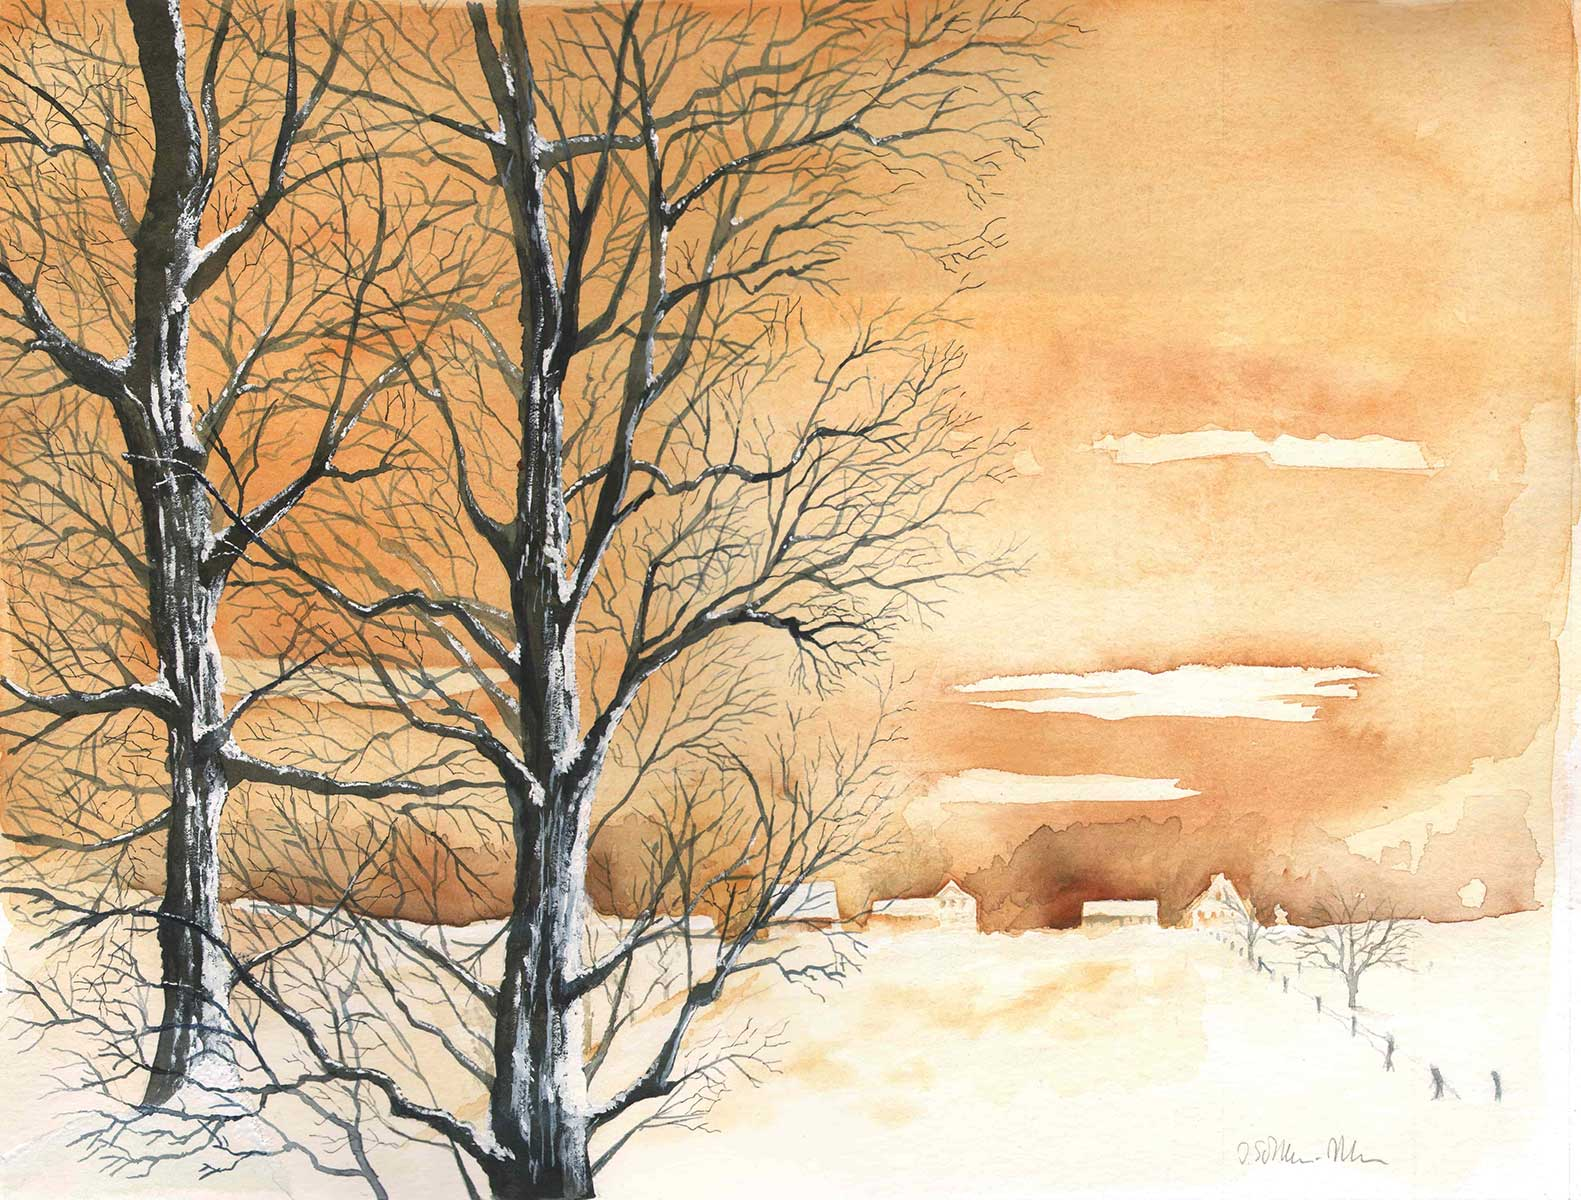 Winterlicher Abendhimmel, Aquarell